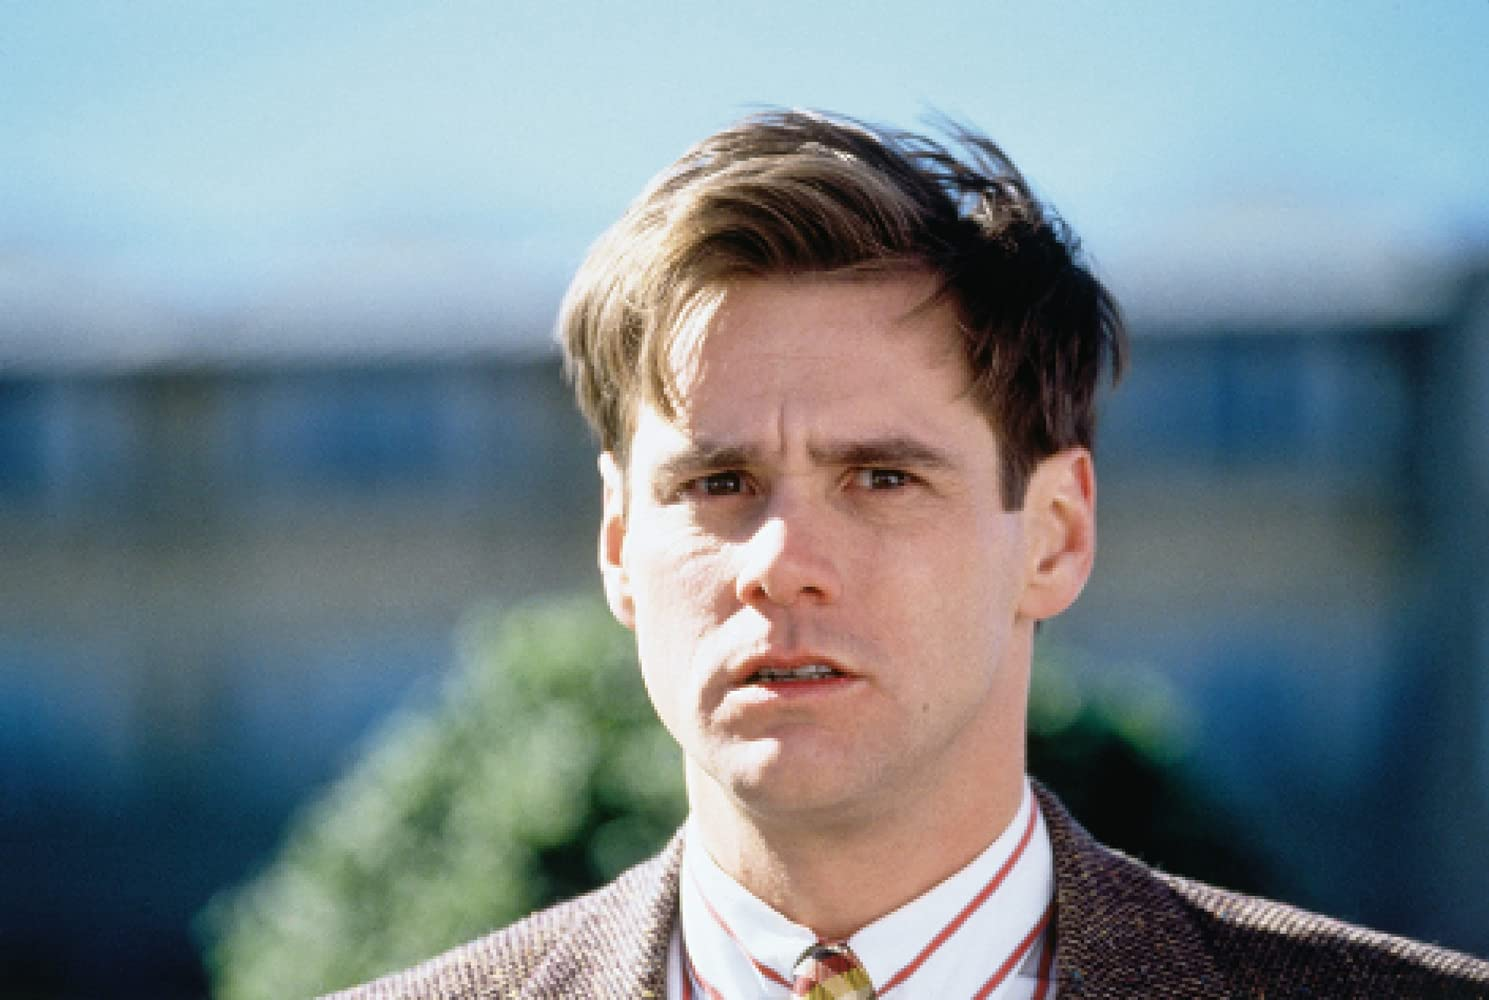 review on the truman show The truman show - official trailer a cool indictment of television's near-irresistible pandering to the inner peeping tom truman burbank (jim carrey) lives in preternaturally picturesque seahaven, an oasis of friendly neighbors and natural beauty, but finds himself increasingly troubled by the vague.